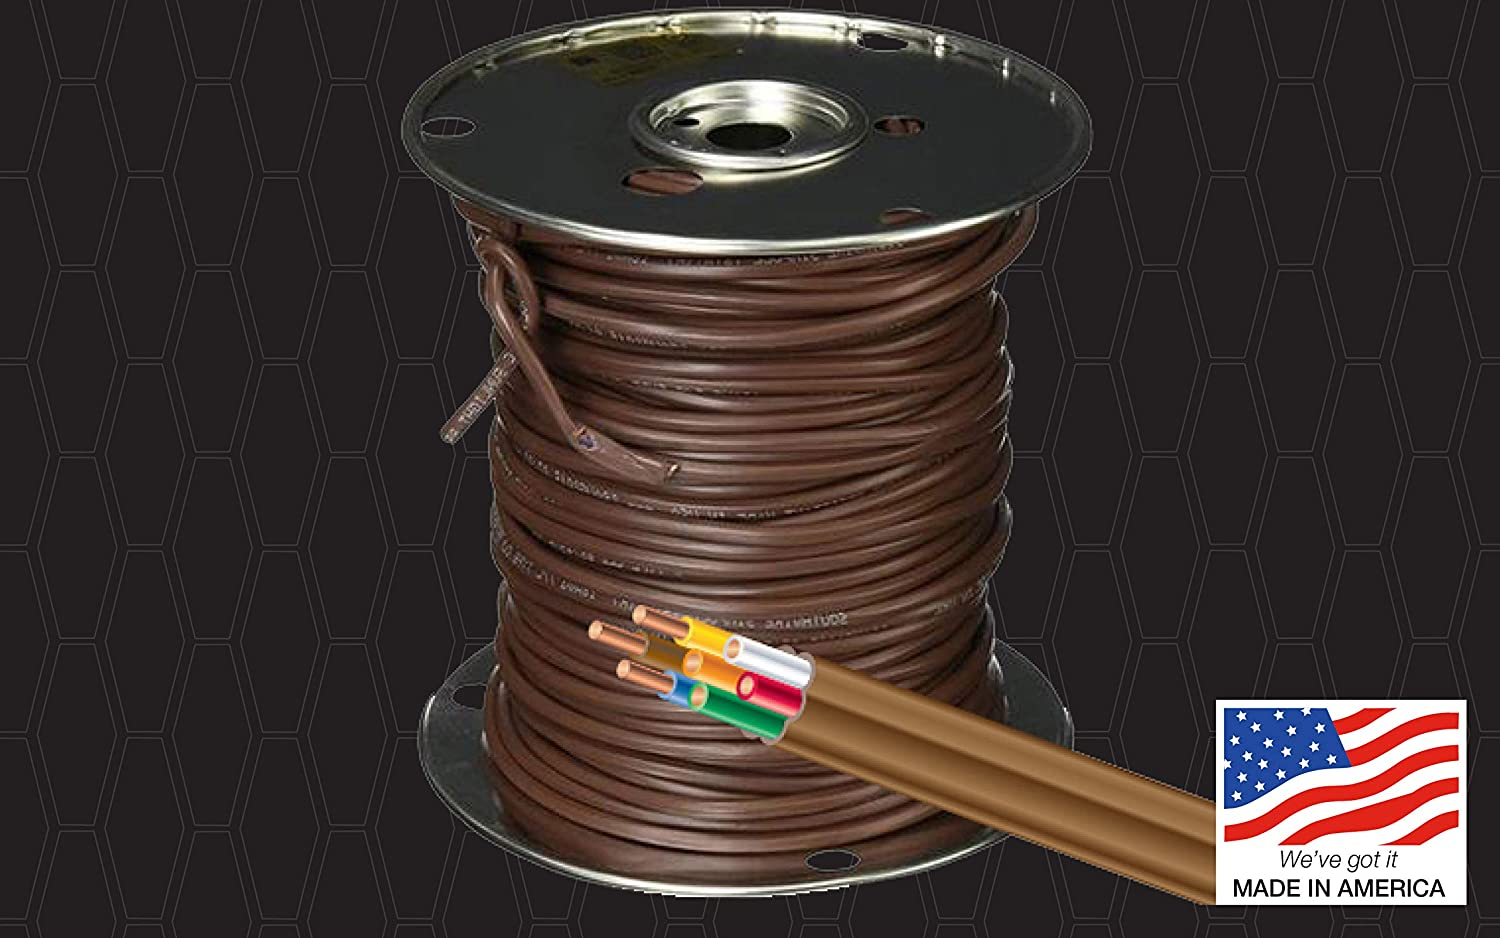 Southwire 64169622 5 Conductor 18/5 Thermostat Wire, 18-Gauge Solid Copper Class 2 Power-Limited Circuit Cable, 50-Feet, Brown - Electrical Wires -